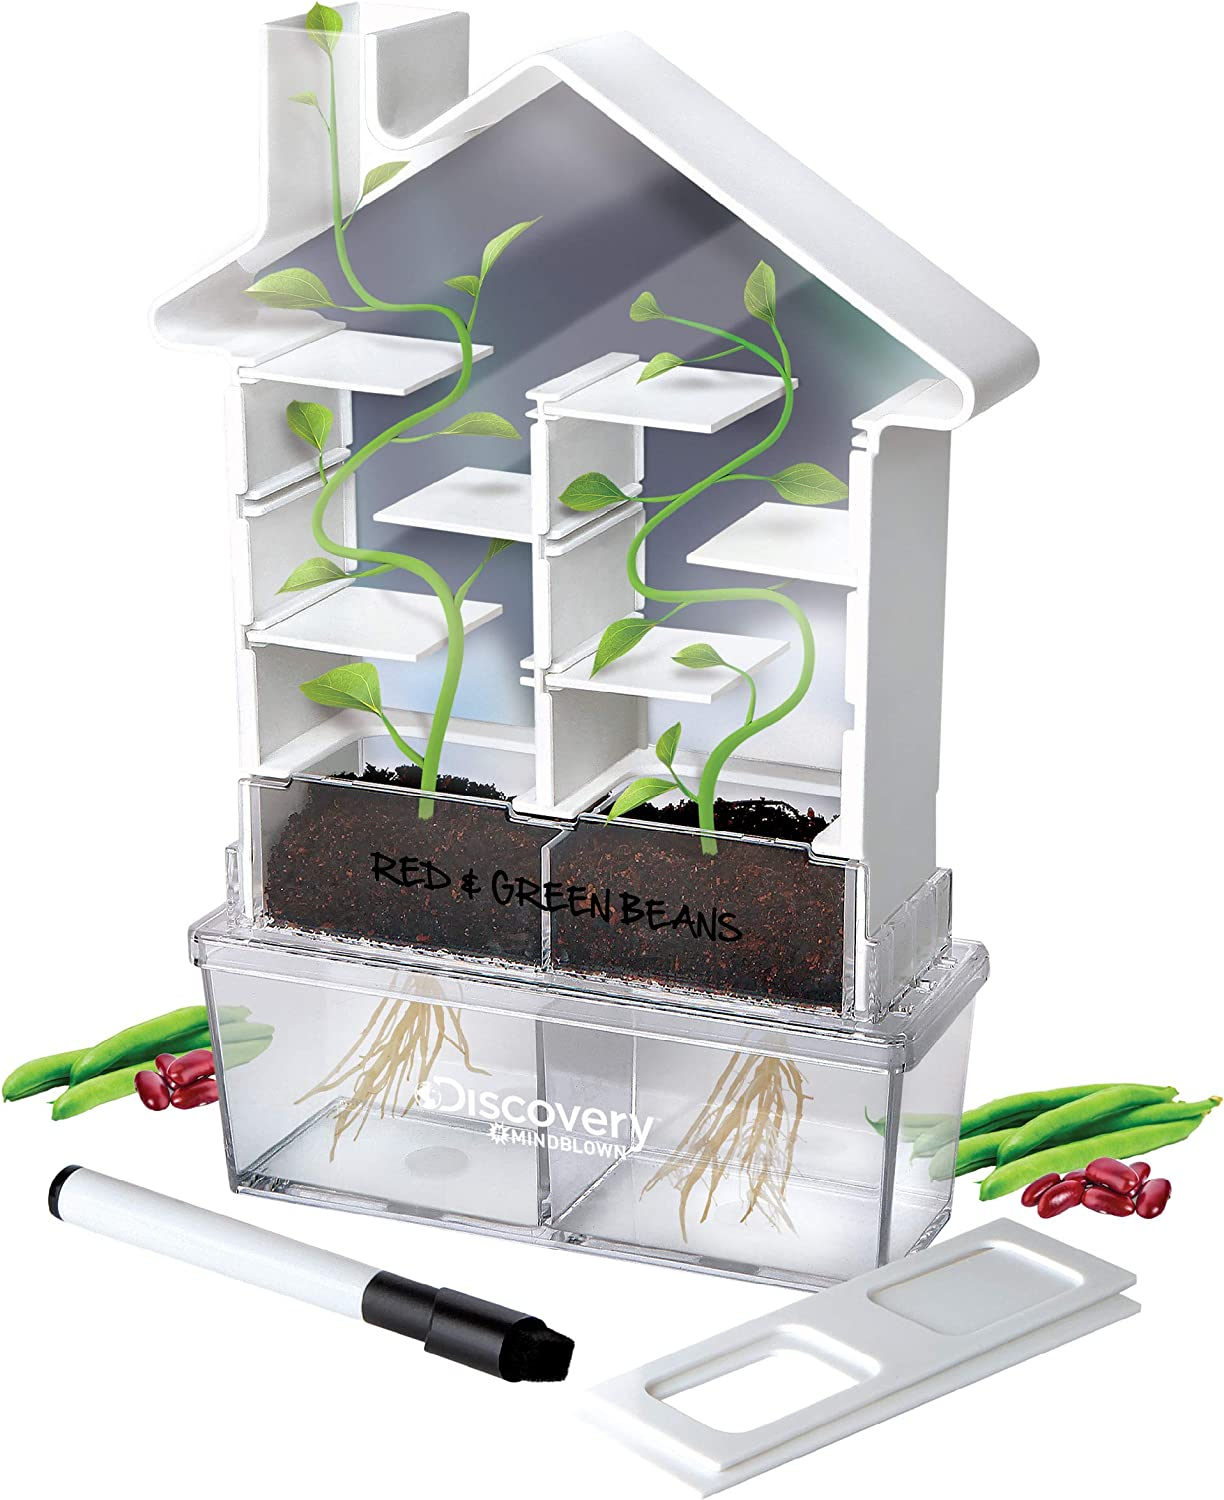 Discovery MINDBLOWN Maze Planter DIY Build & Grow Botany Kit, STEM Science Experiment for Kids, Fun Home Lab Sprout Phototropism Project for Boys and Girls, Window Garden Set for Learning Biology